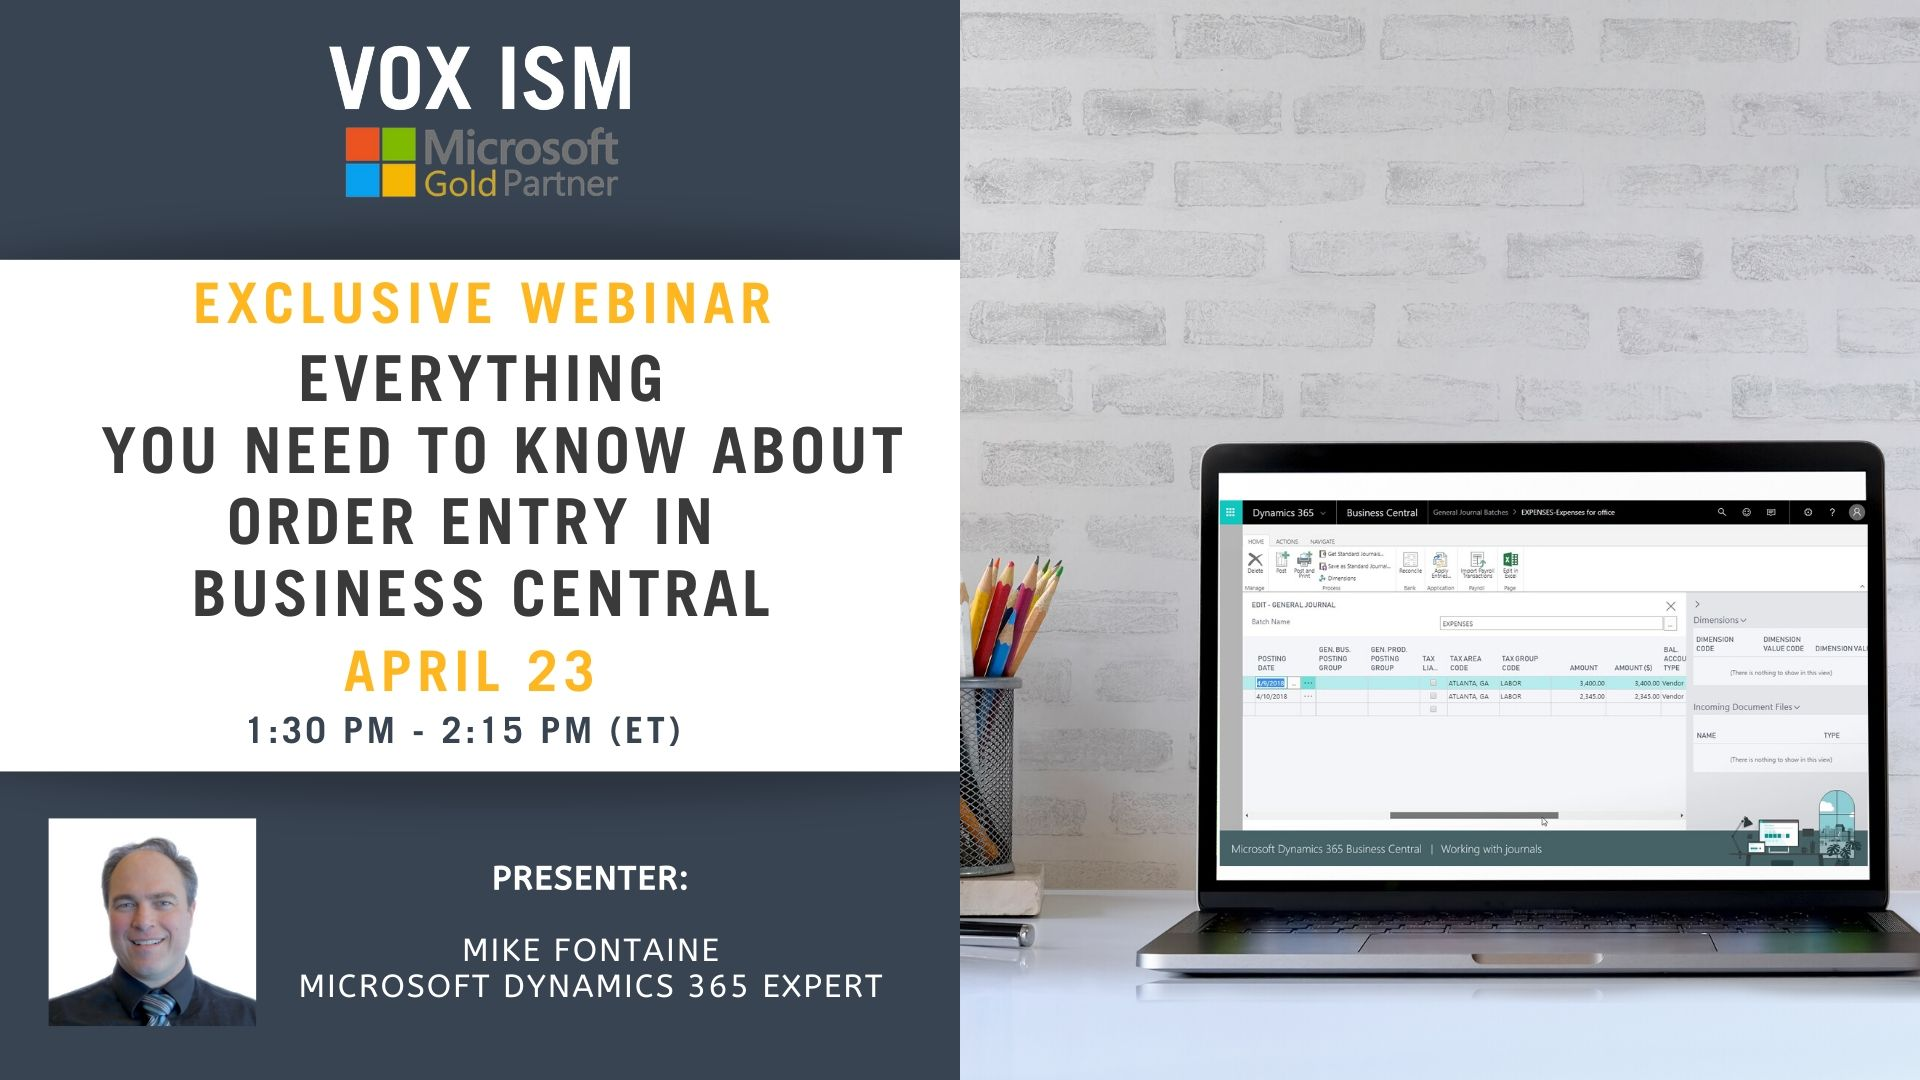 Everything You Need to Know About Order Entry in Business Central - April 23 - Webinar_VOX ISM